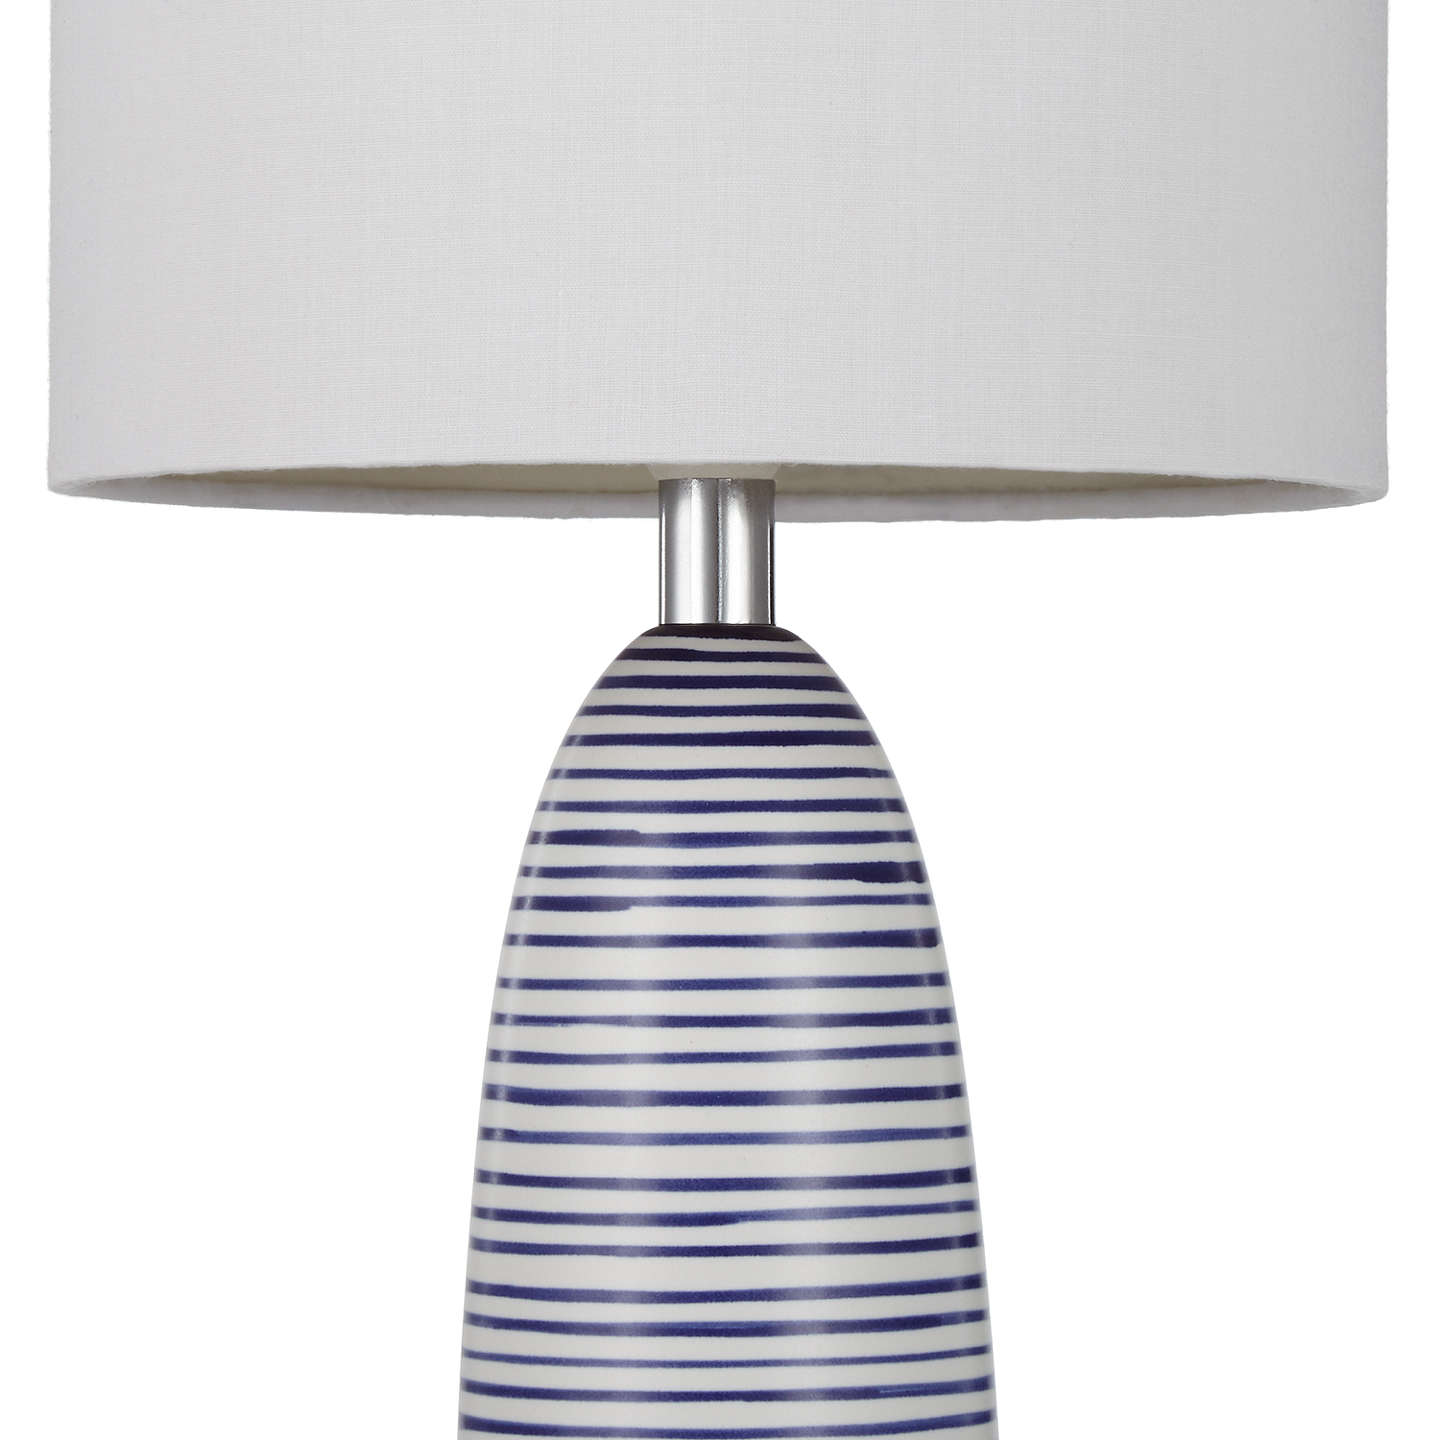 BuyJohn Lewis Lolly Table Lamp Online at johnlewis.com